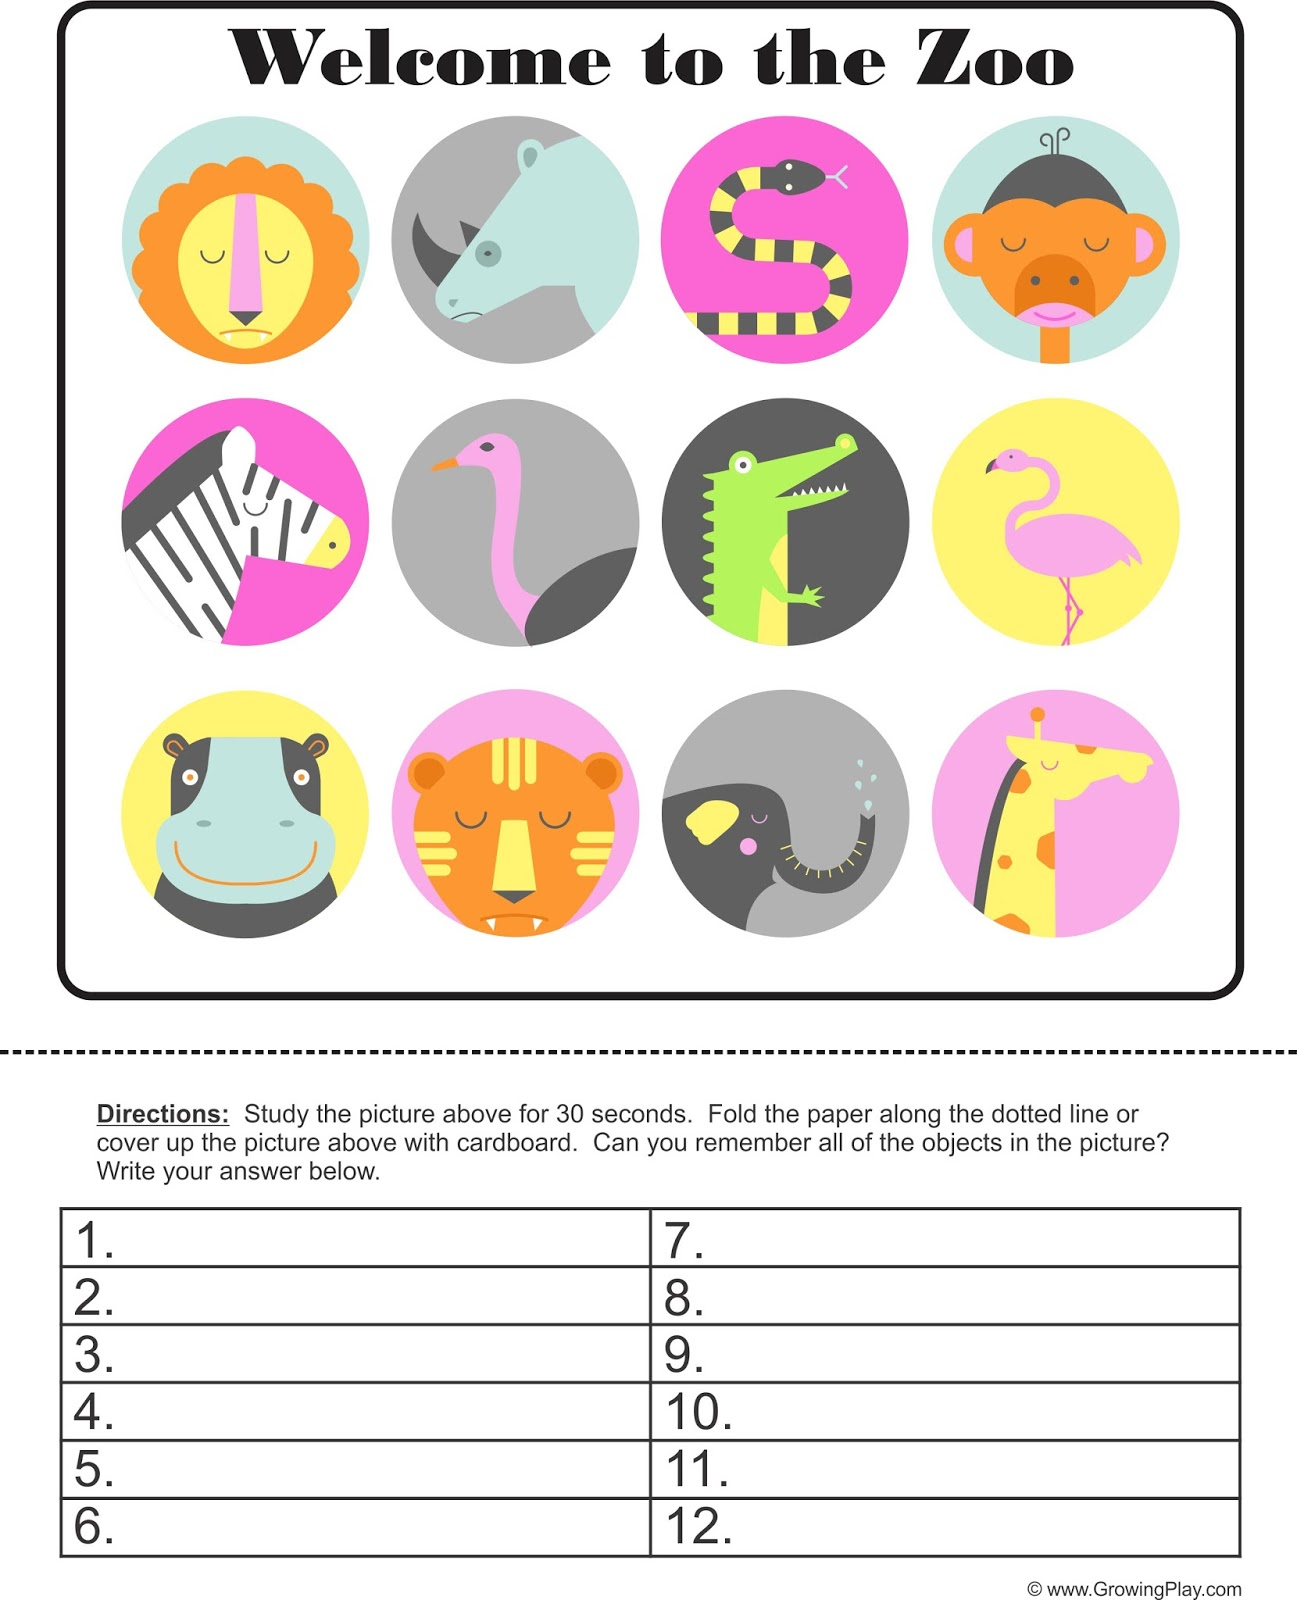 Growing Play: Memory Challenge - Welcome to the Zoo